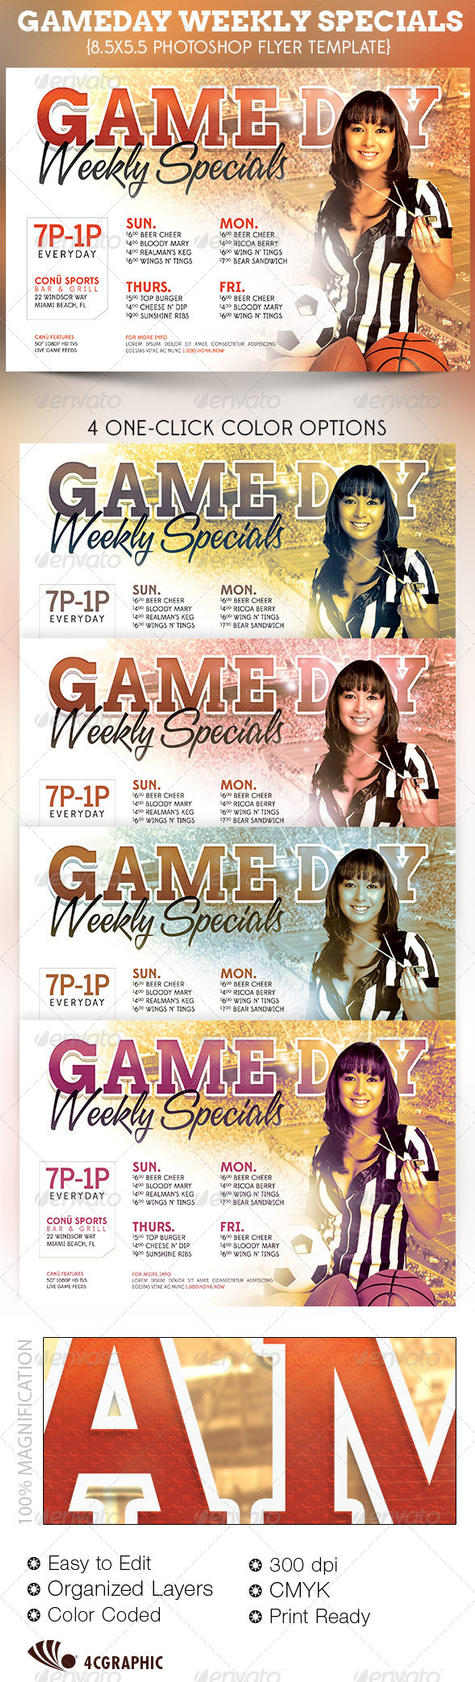 game day specials flyer template by godserv on deviantart. Black Bedroom Furniture Sets. Home Design Ideas